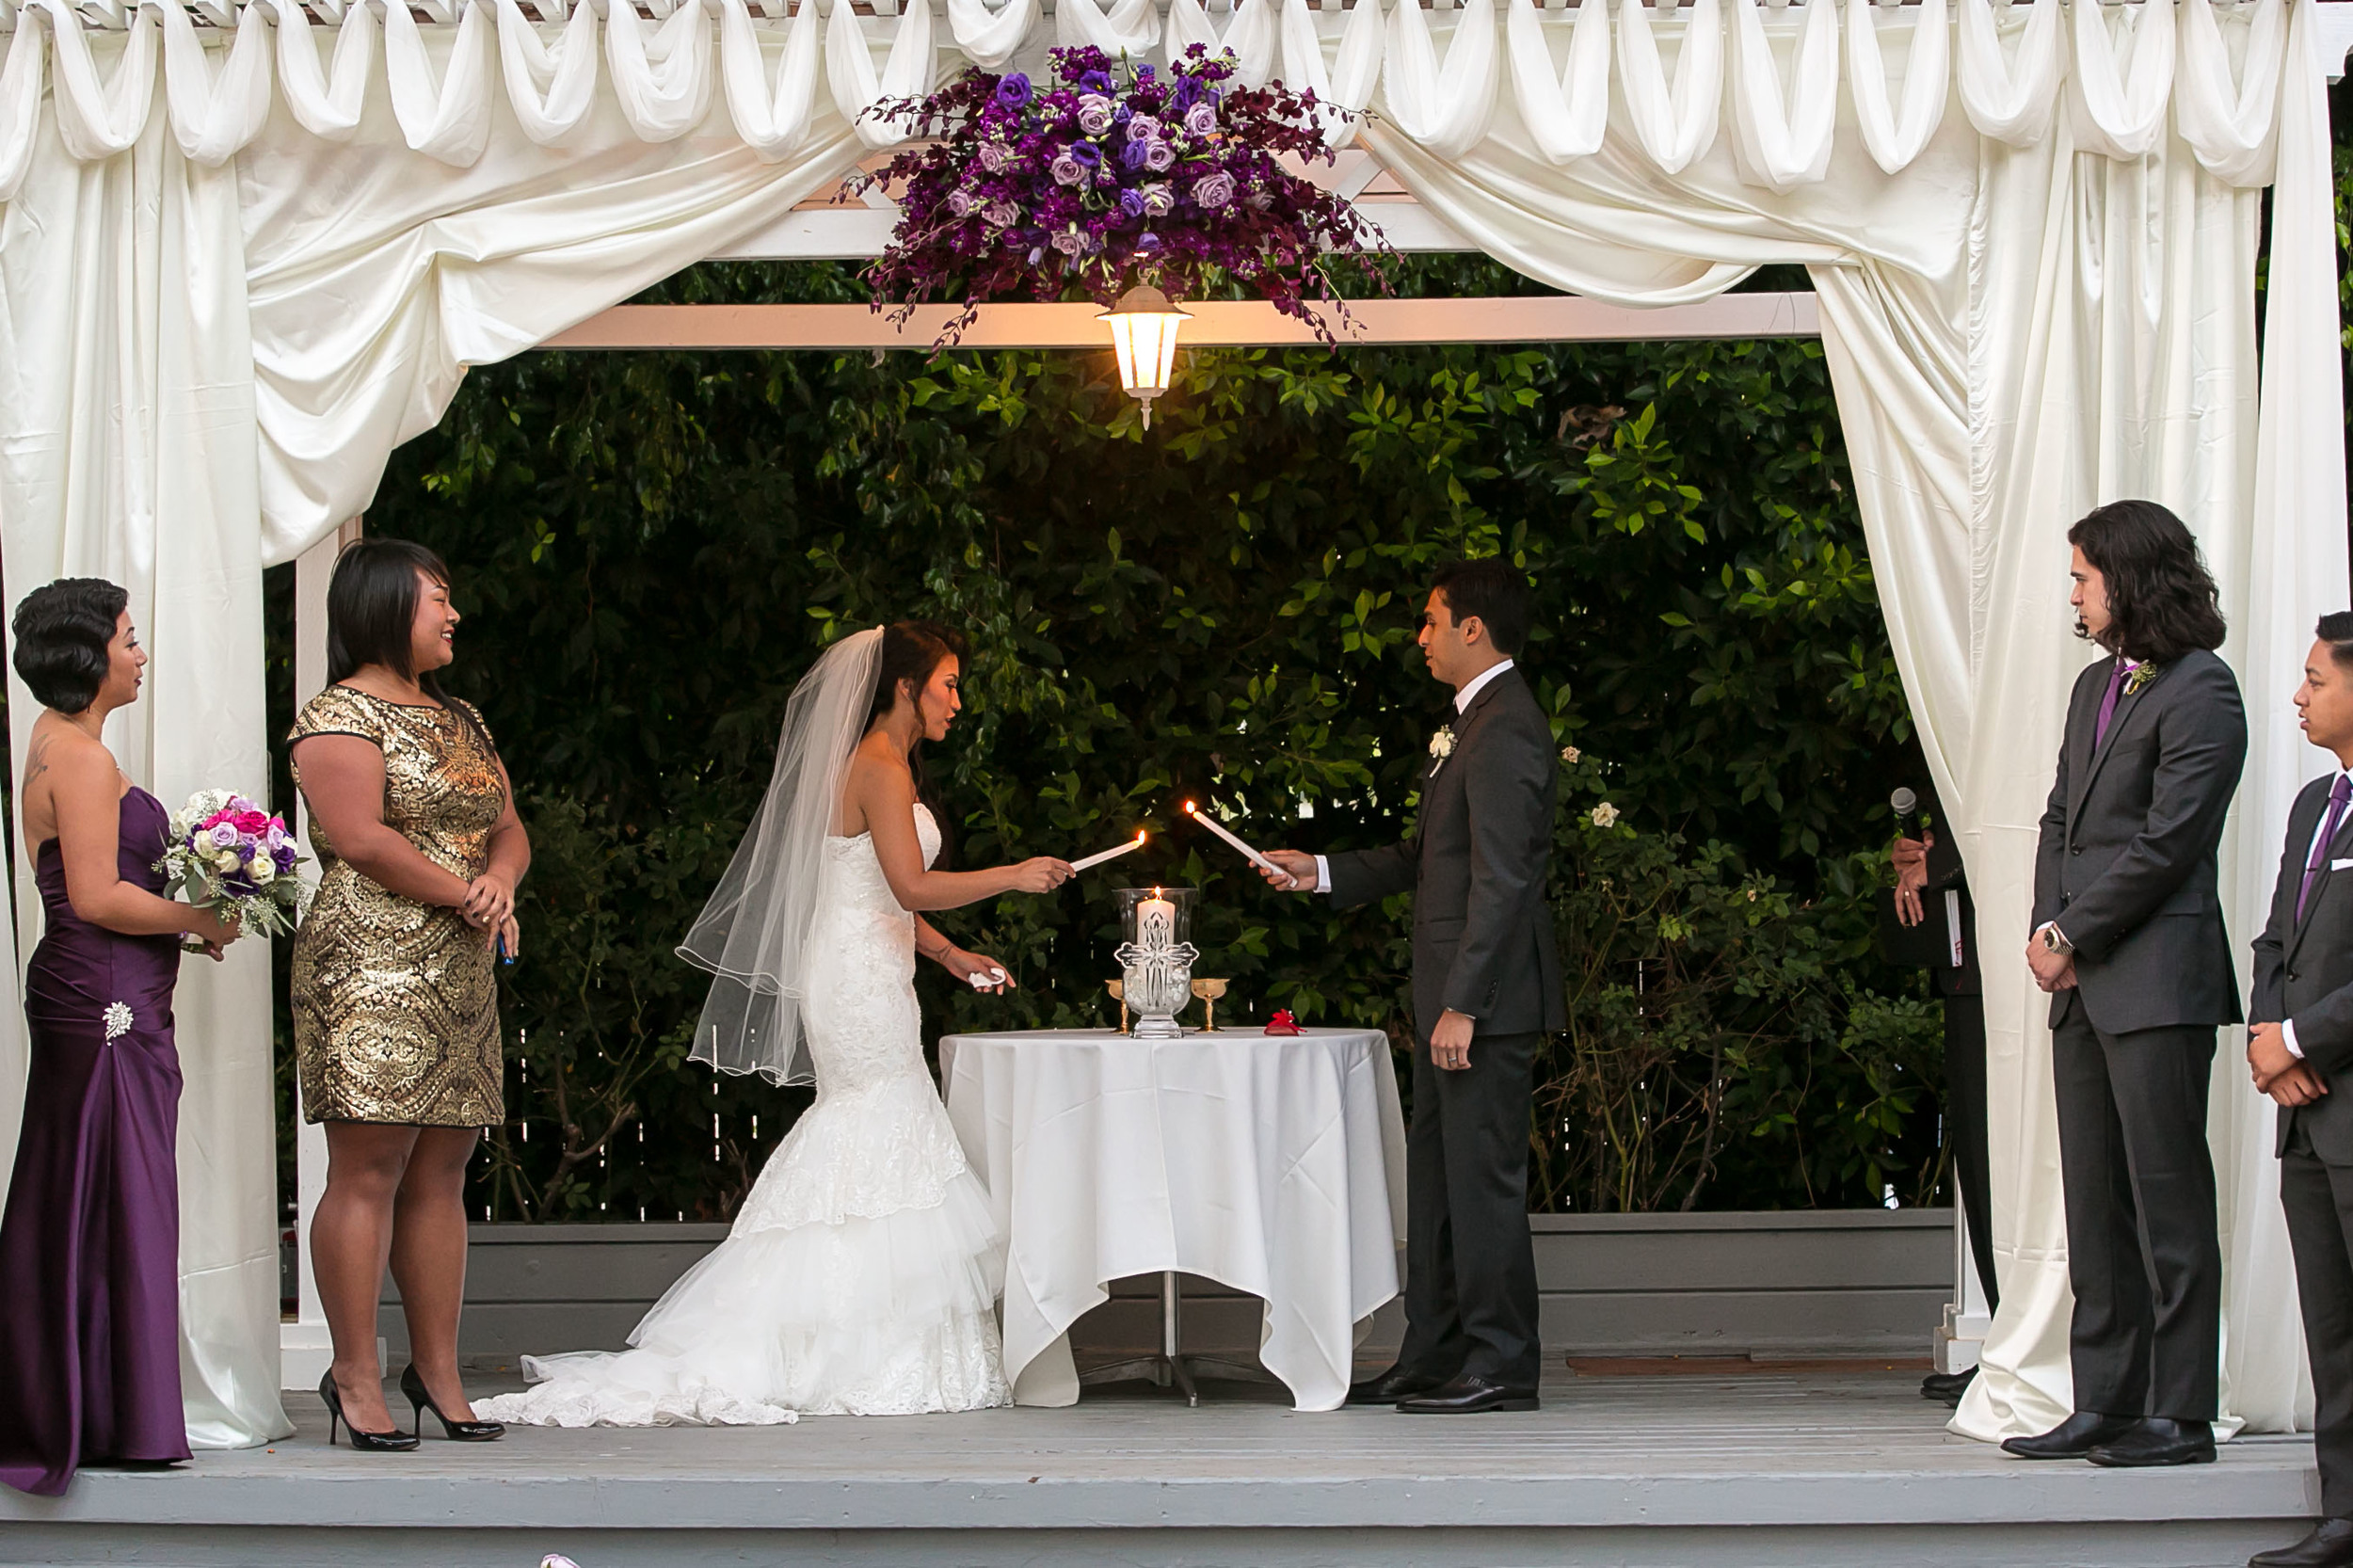 SPORTSMENS LODGE WEDDING LOS ANGELES WEDDING PHOTOGRAPHER CHRIS HOLT PHOTOGRAPHY_031.jpg